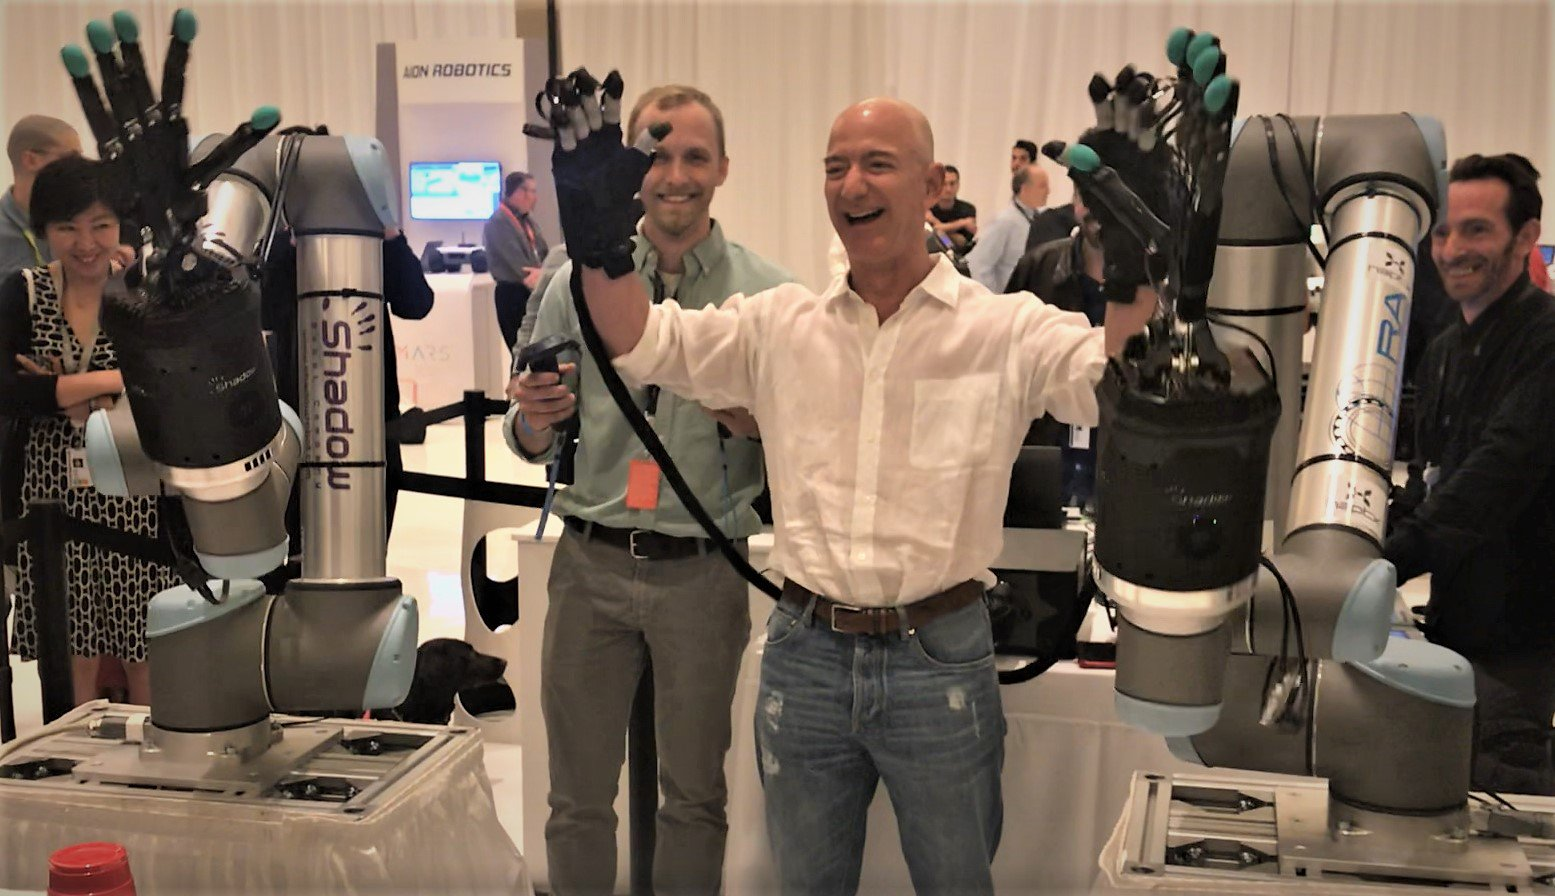 Jeff Bezos gets hands-on with haptic telerobotics